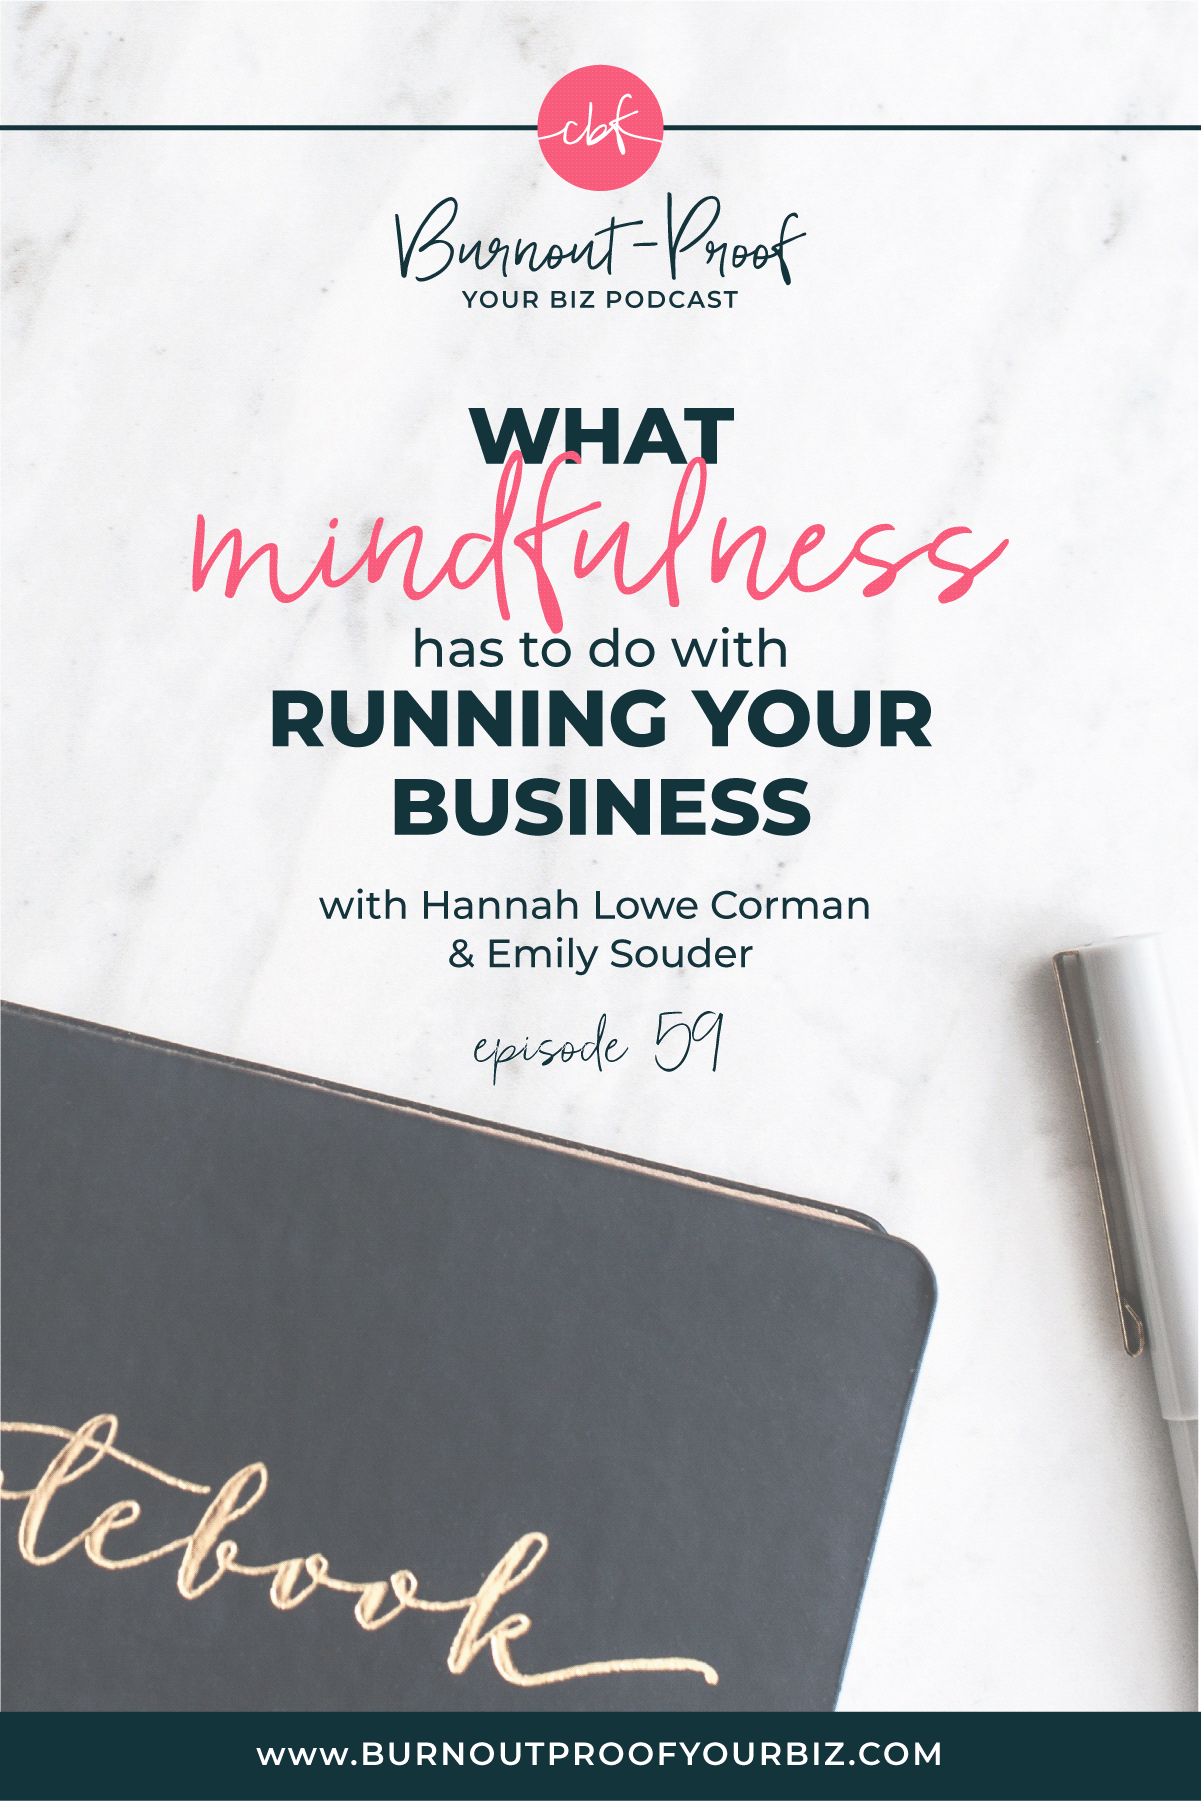 WHAT MINDFULNESS HAS TO DO WITH RUNNING YOUR BUSINESS on the Burnout-Proof Your Biz Podcast with Chelsea B Foster | Episode 059 - Living and Running a Business Mindfully with Hannah Lowe Corman and Emily Souder | Learn how to run your biz and live your dream life on your own terms without the fear of burnout | Learn how to run your biz and live your dream life on your own terms without the fear of burnout.  |||  LIVING MINDFULLY | SELF-LOVE FOR ENTREPRENEURS | MINDFUL MEDITATIONS FOR MOMS | REIKI HEALING | MUTLI-PASSIONATE CREATIVES | BUSINESS BESTIES | MEDITATIONS FOR ENTREPRENEURS | TRUST YOUR GUT